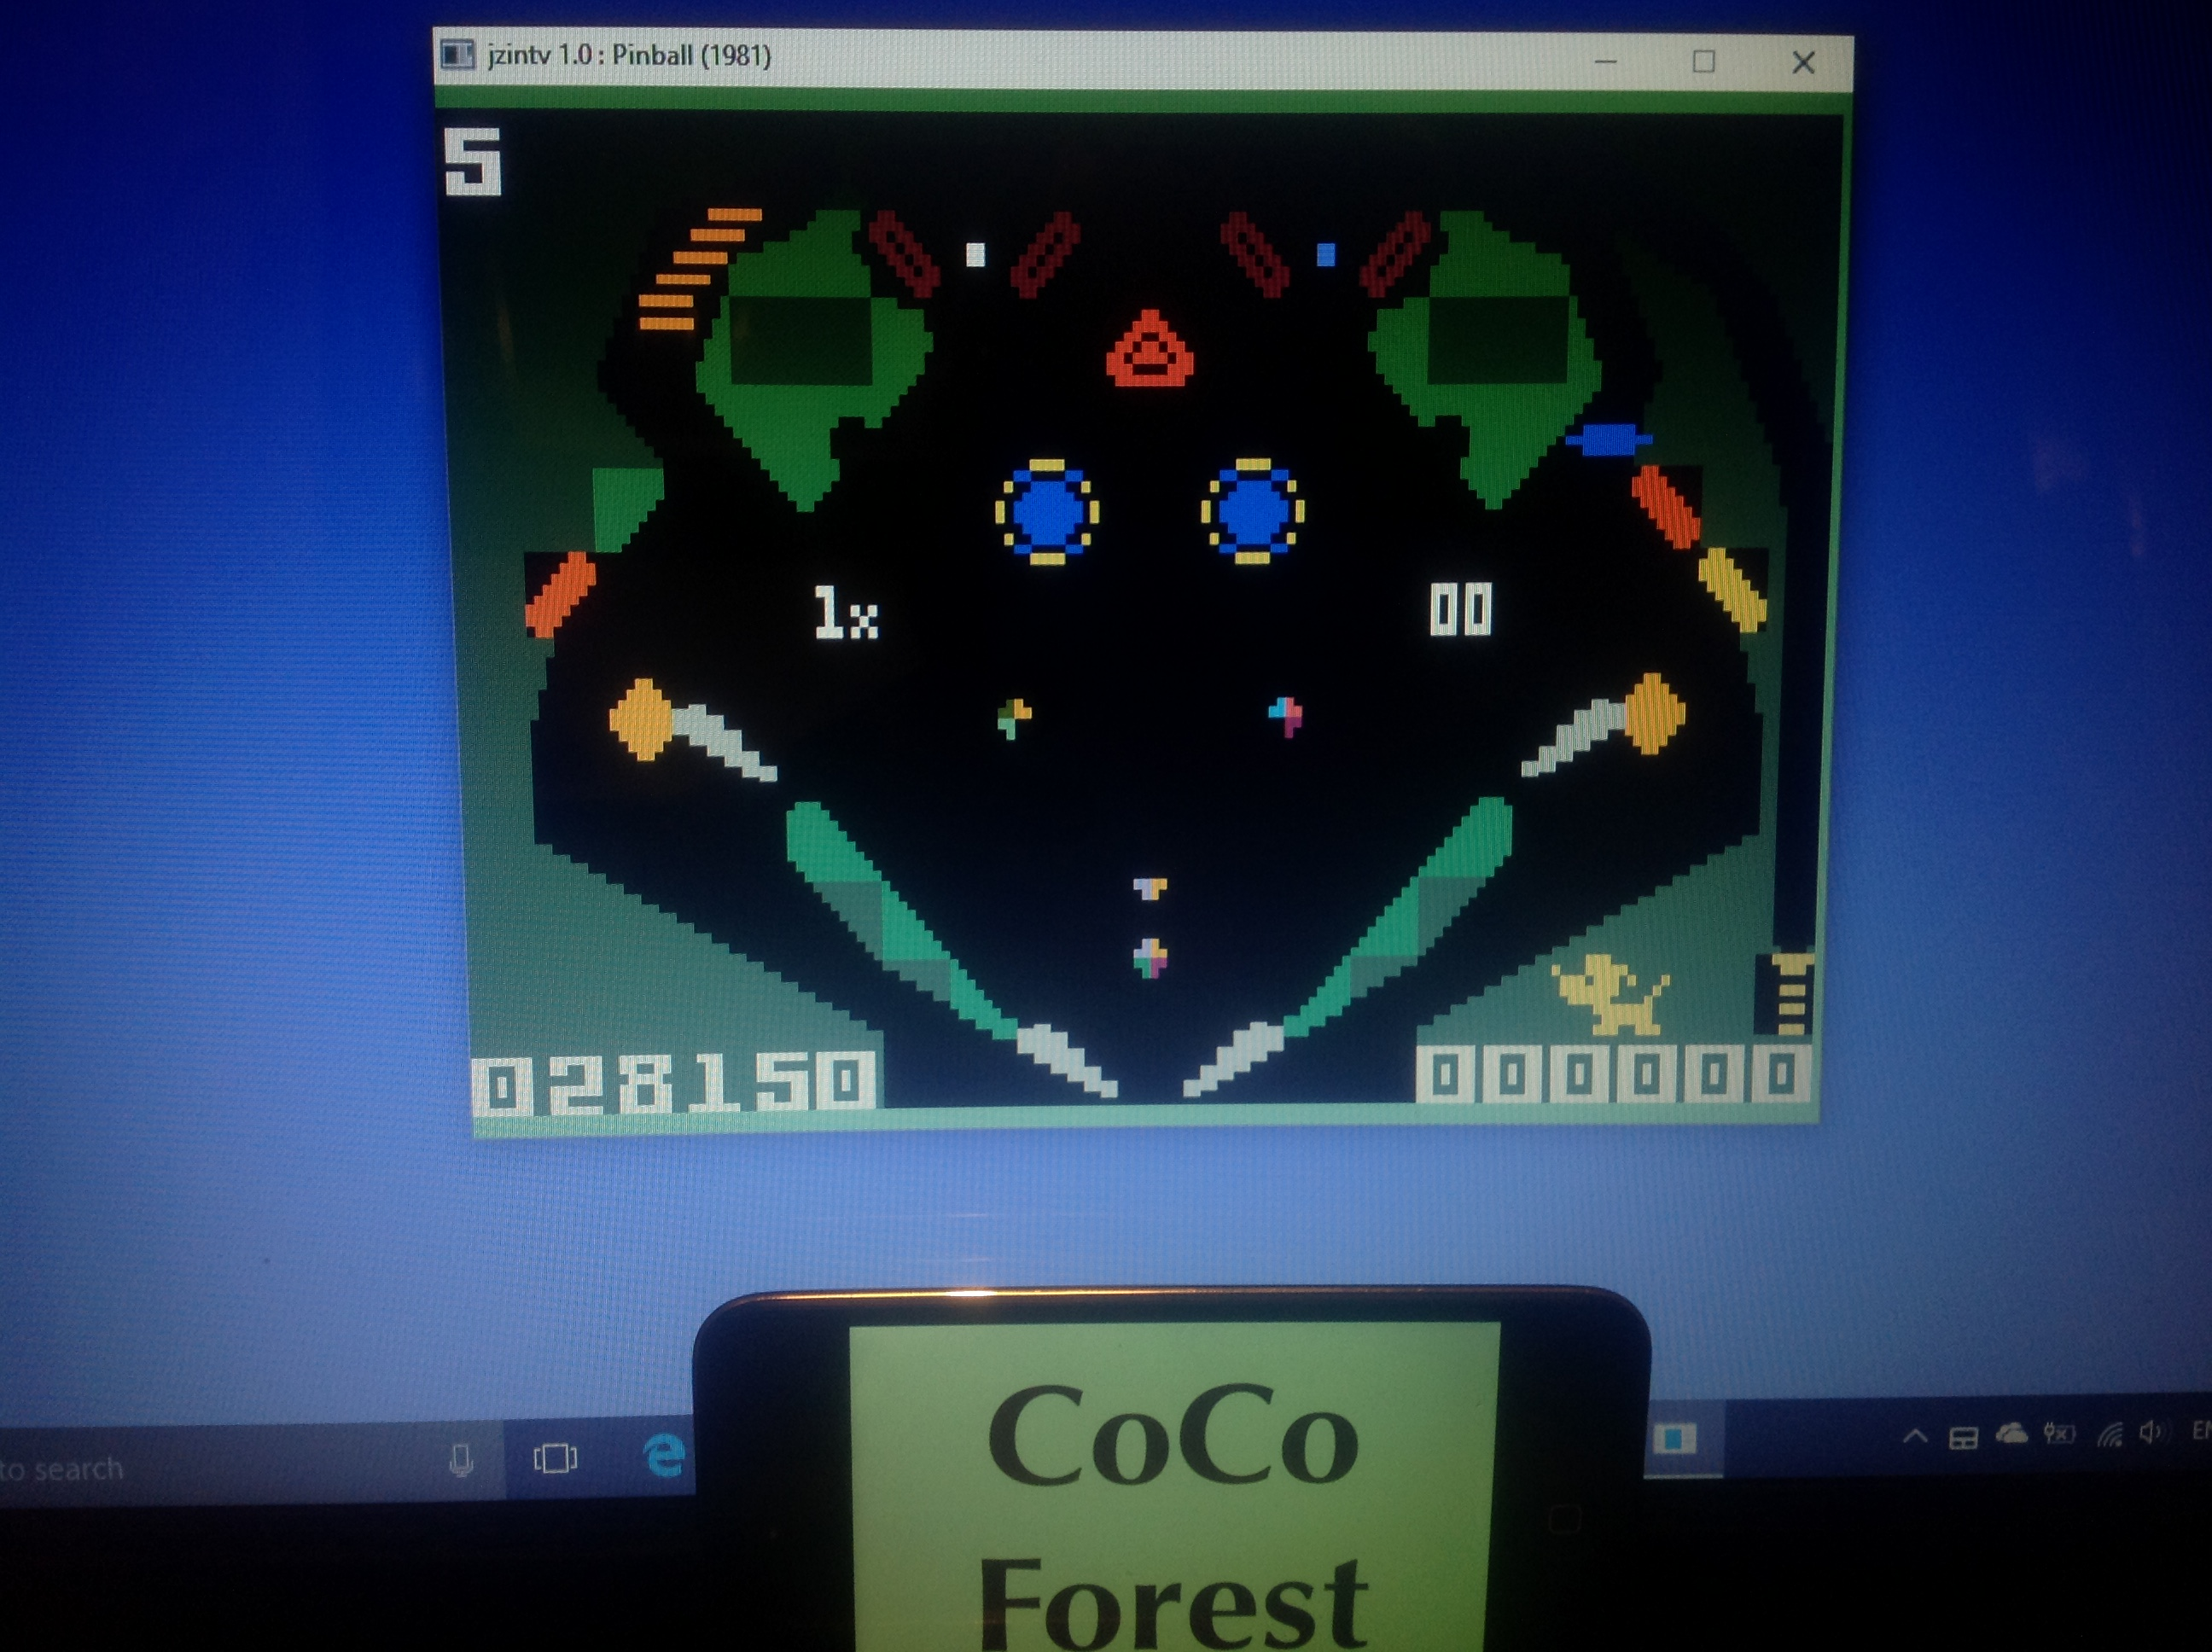 CoCoForest: Pinball (Intellivision Emulated) 28,150 points on 2018-01-25 11:10:51